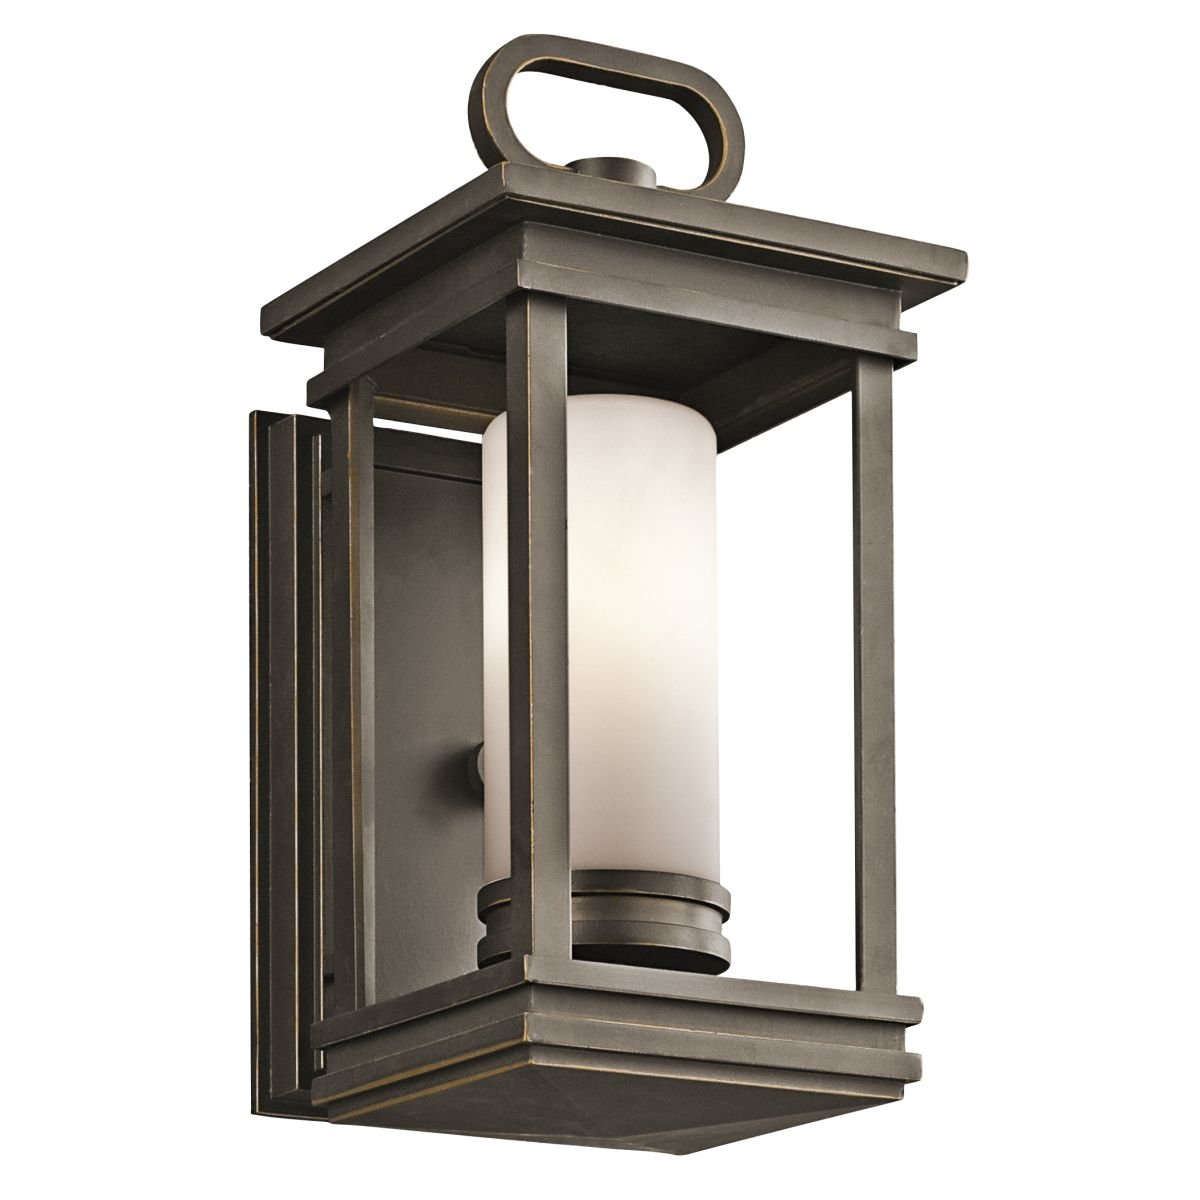 Kichler 49474rz South Hope 1 Light 1175 Small Outdoor Wall In Home Depot Photocells For Rubbed Bronze Porch Lights